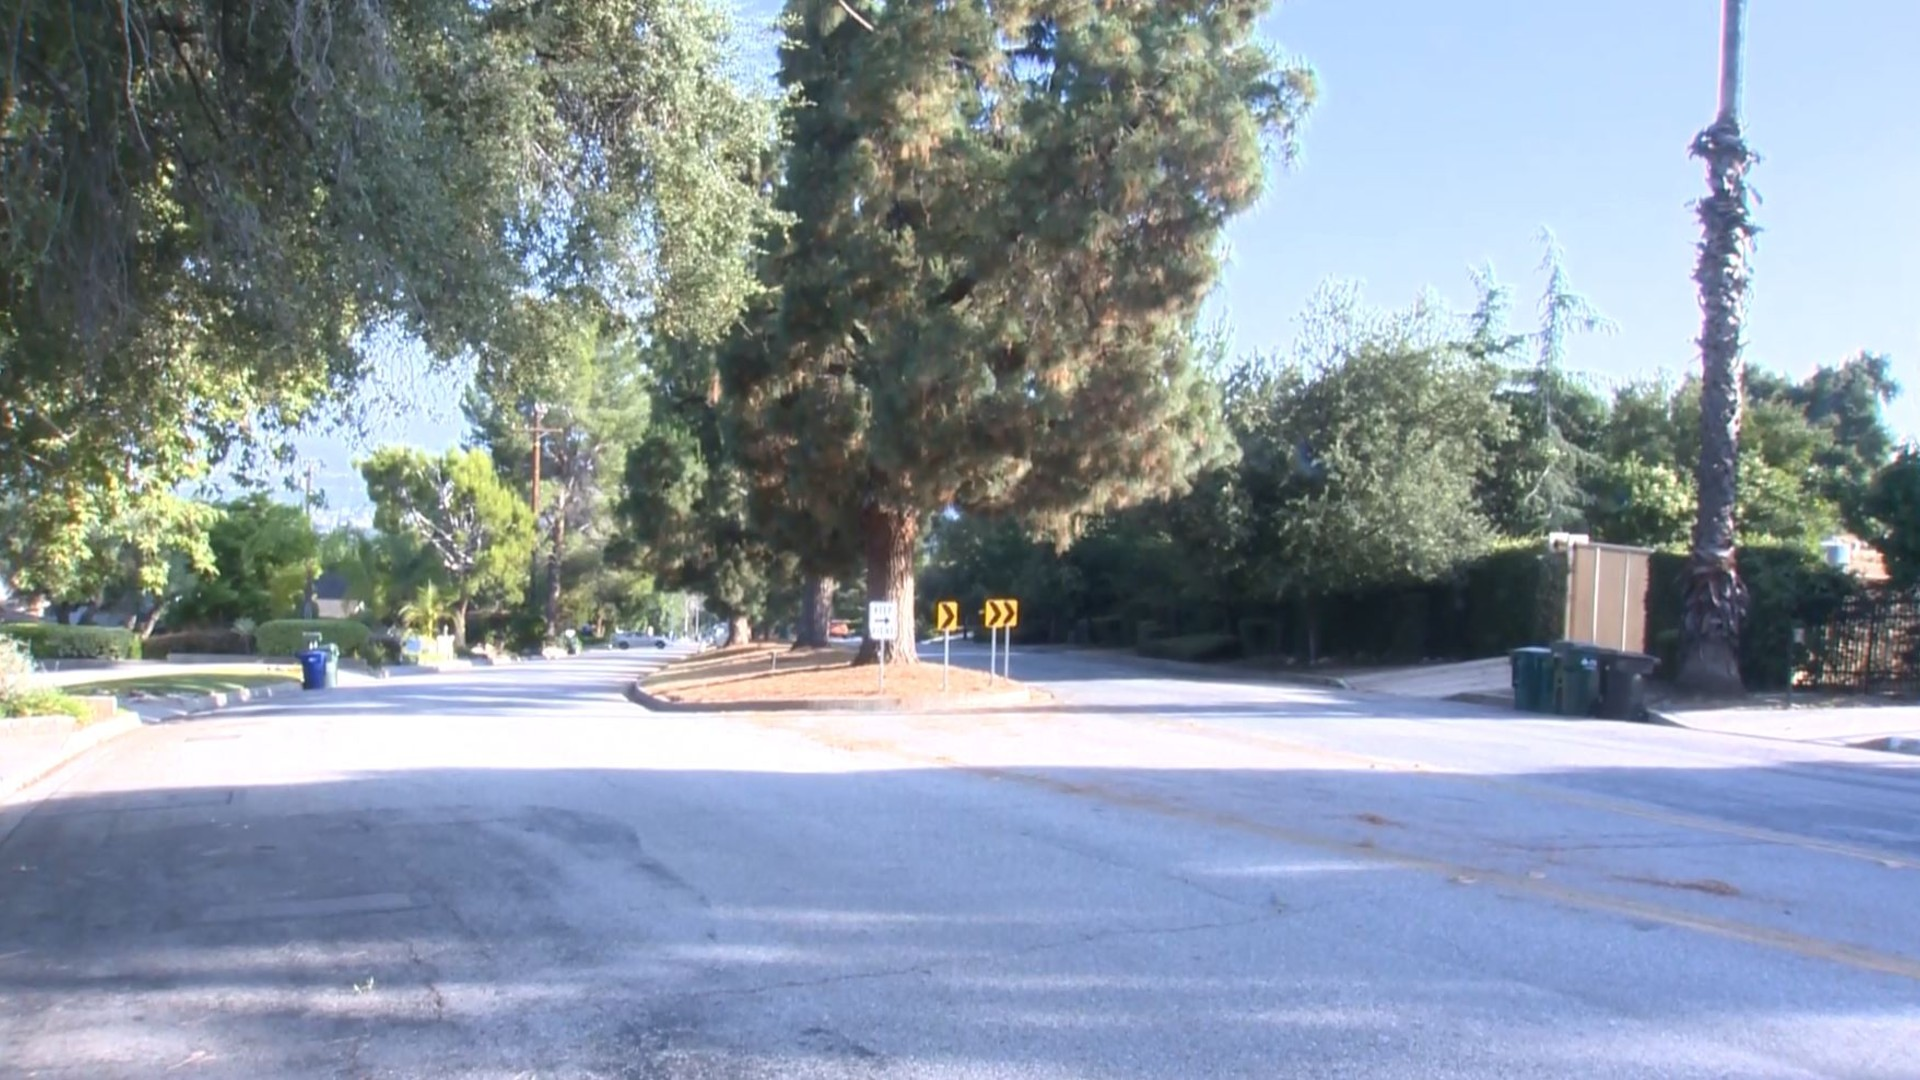 The 2000 block of North Santa Anita Avenue, as pictured on June 17, 2020. (KTLA)